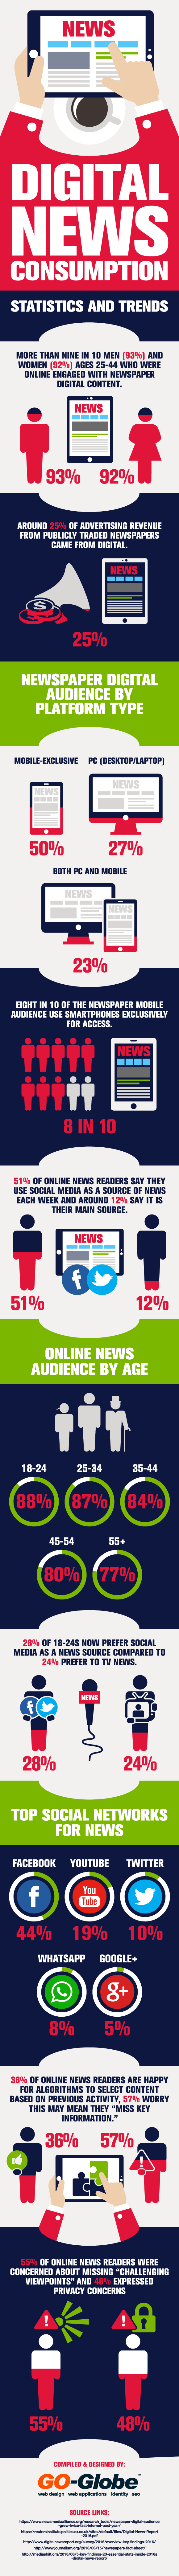 Digital News Consumption Statistics